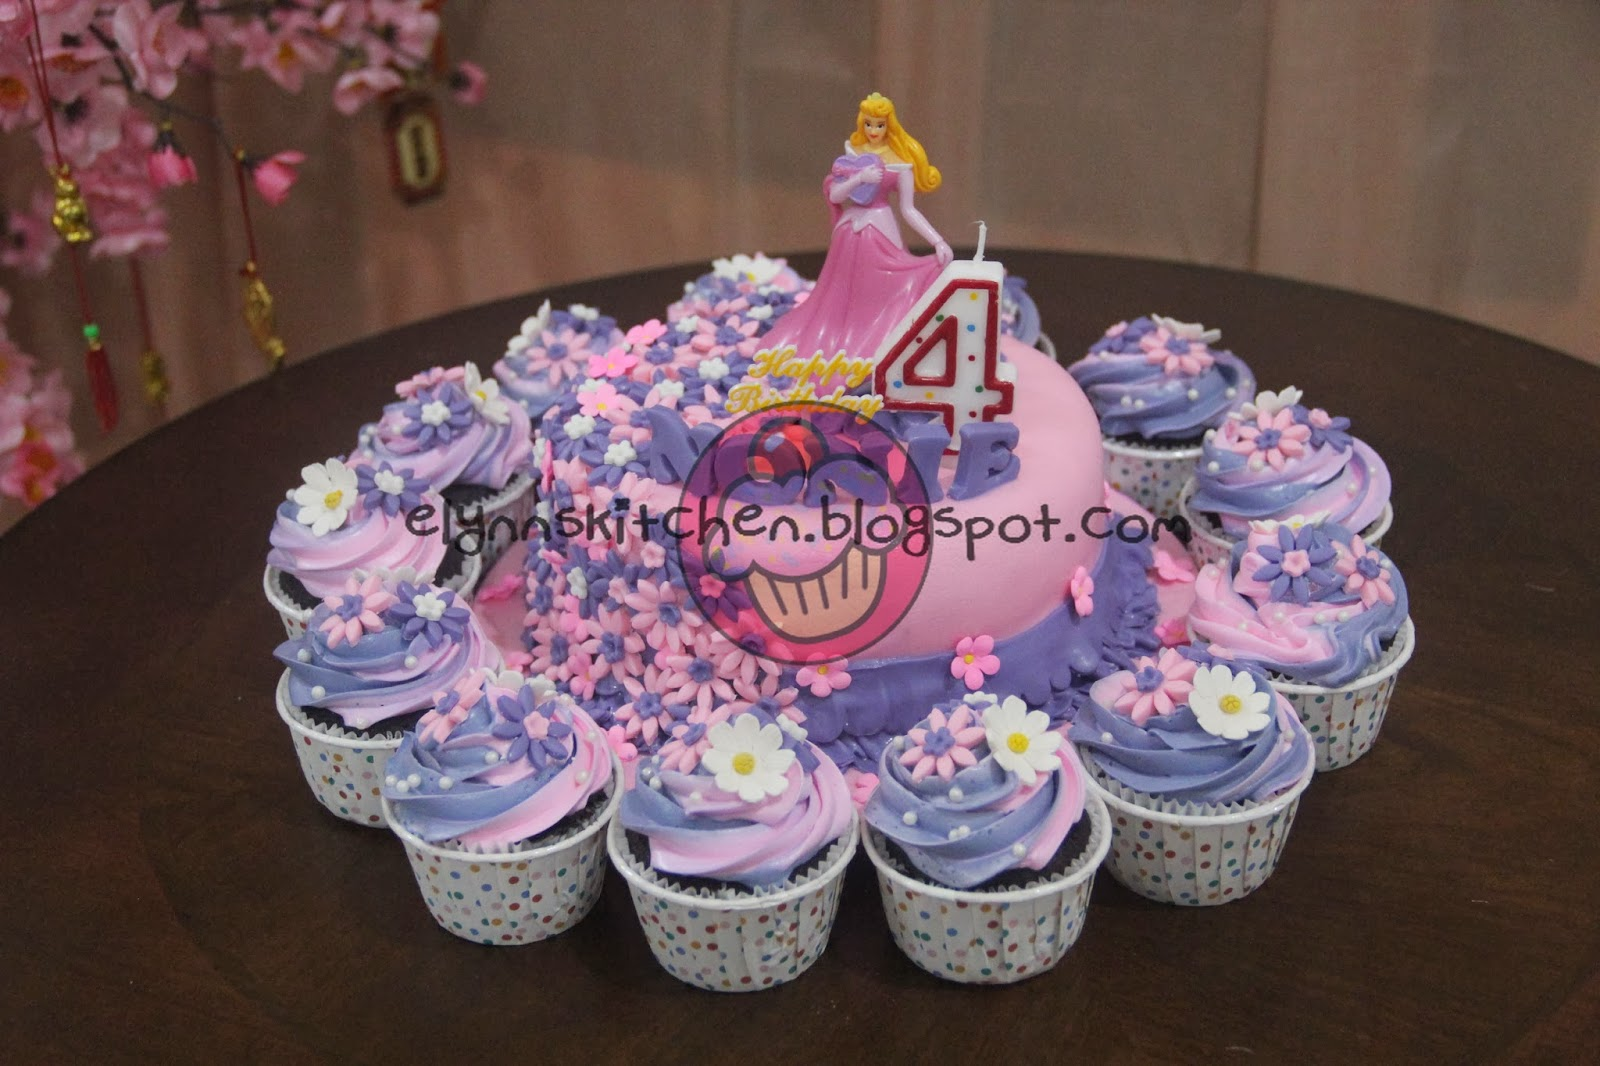 ... Princess Theme Birthday Cake & Cupcakes for Nonie's 4th Birthday